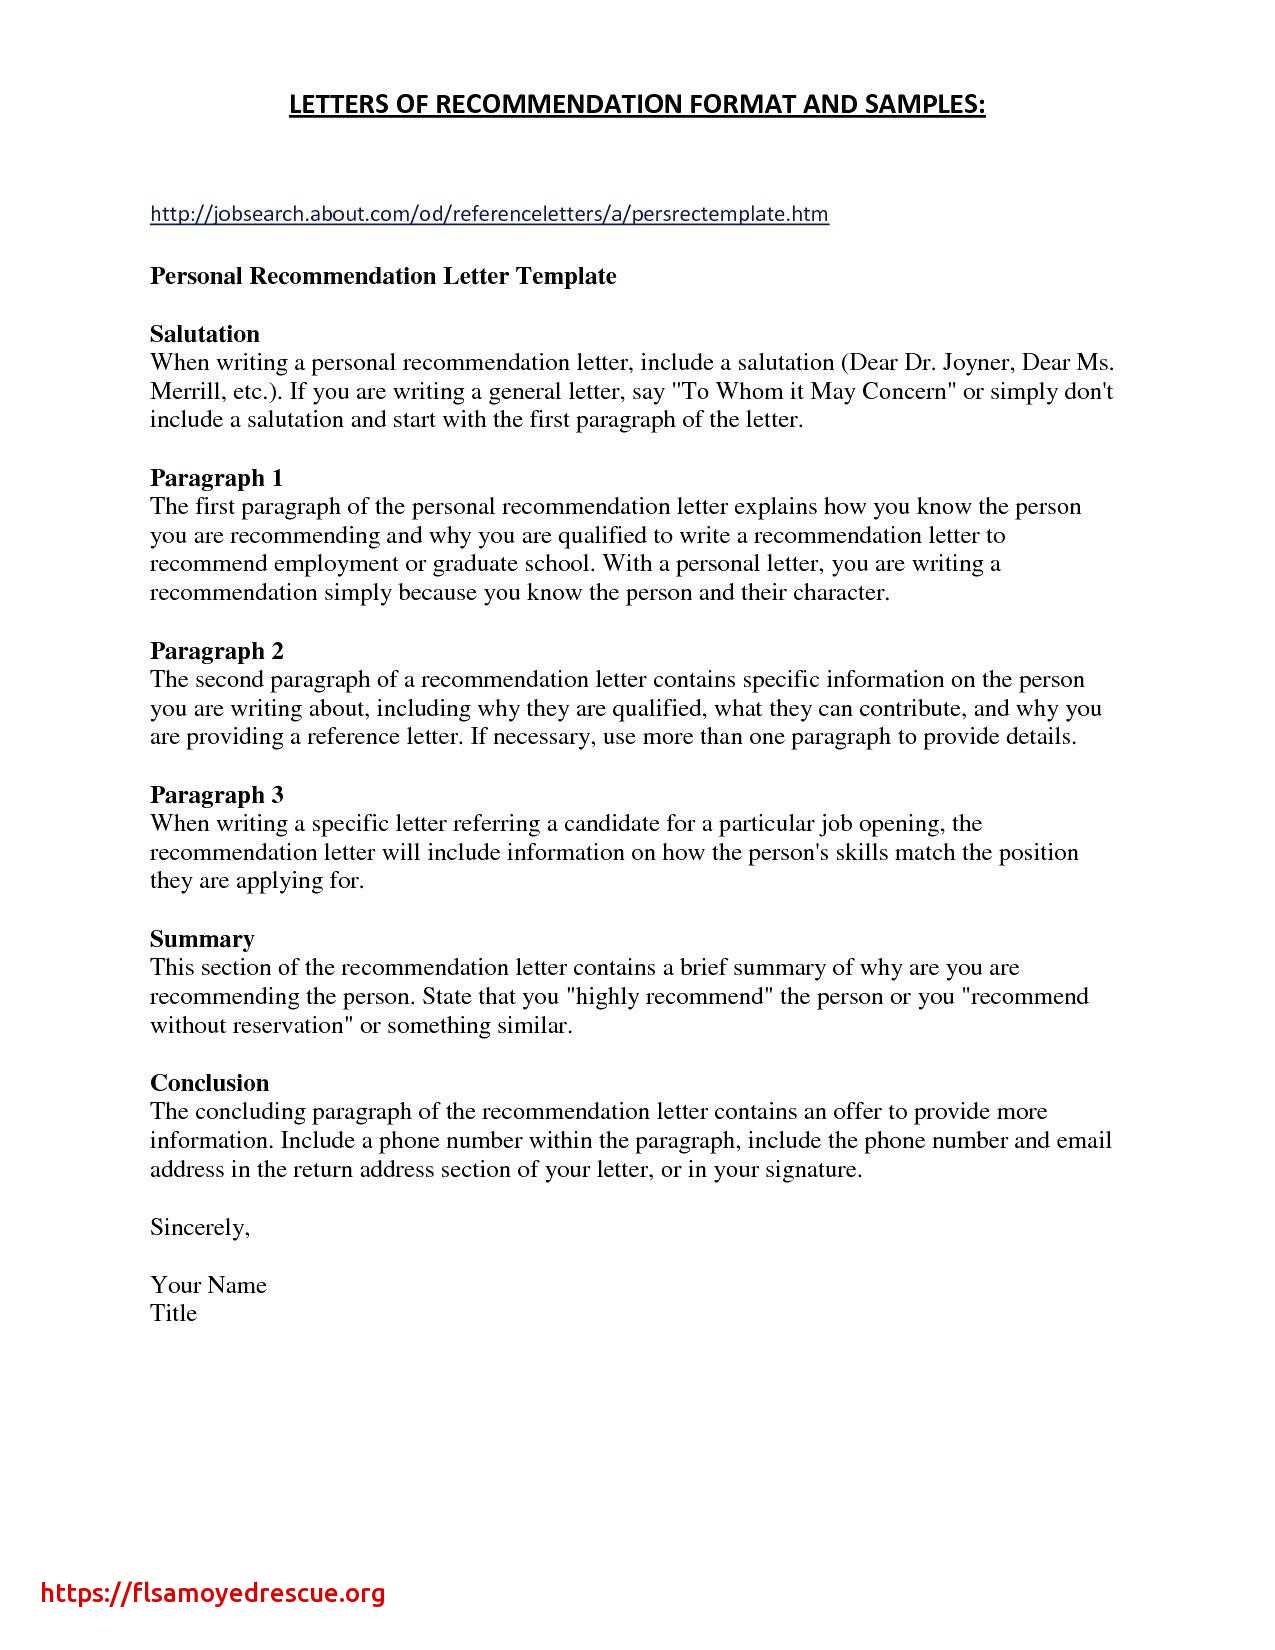 competent person letter template example-personal character reference letter template 3-p